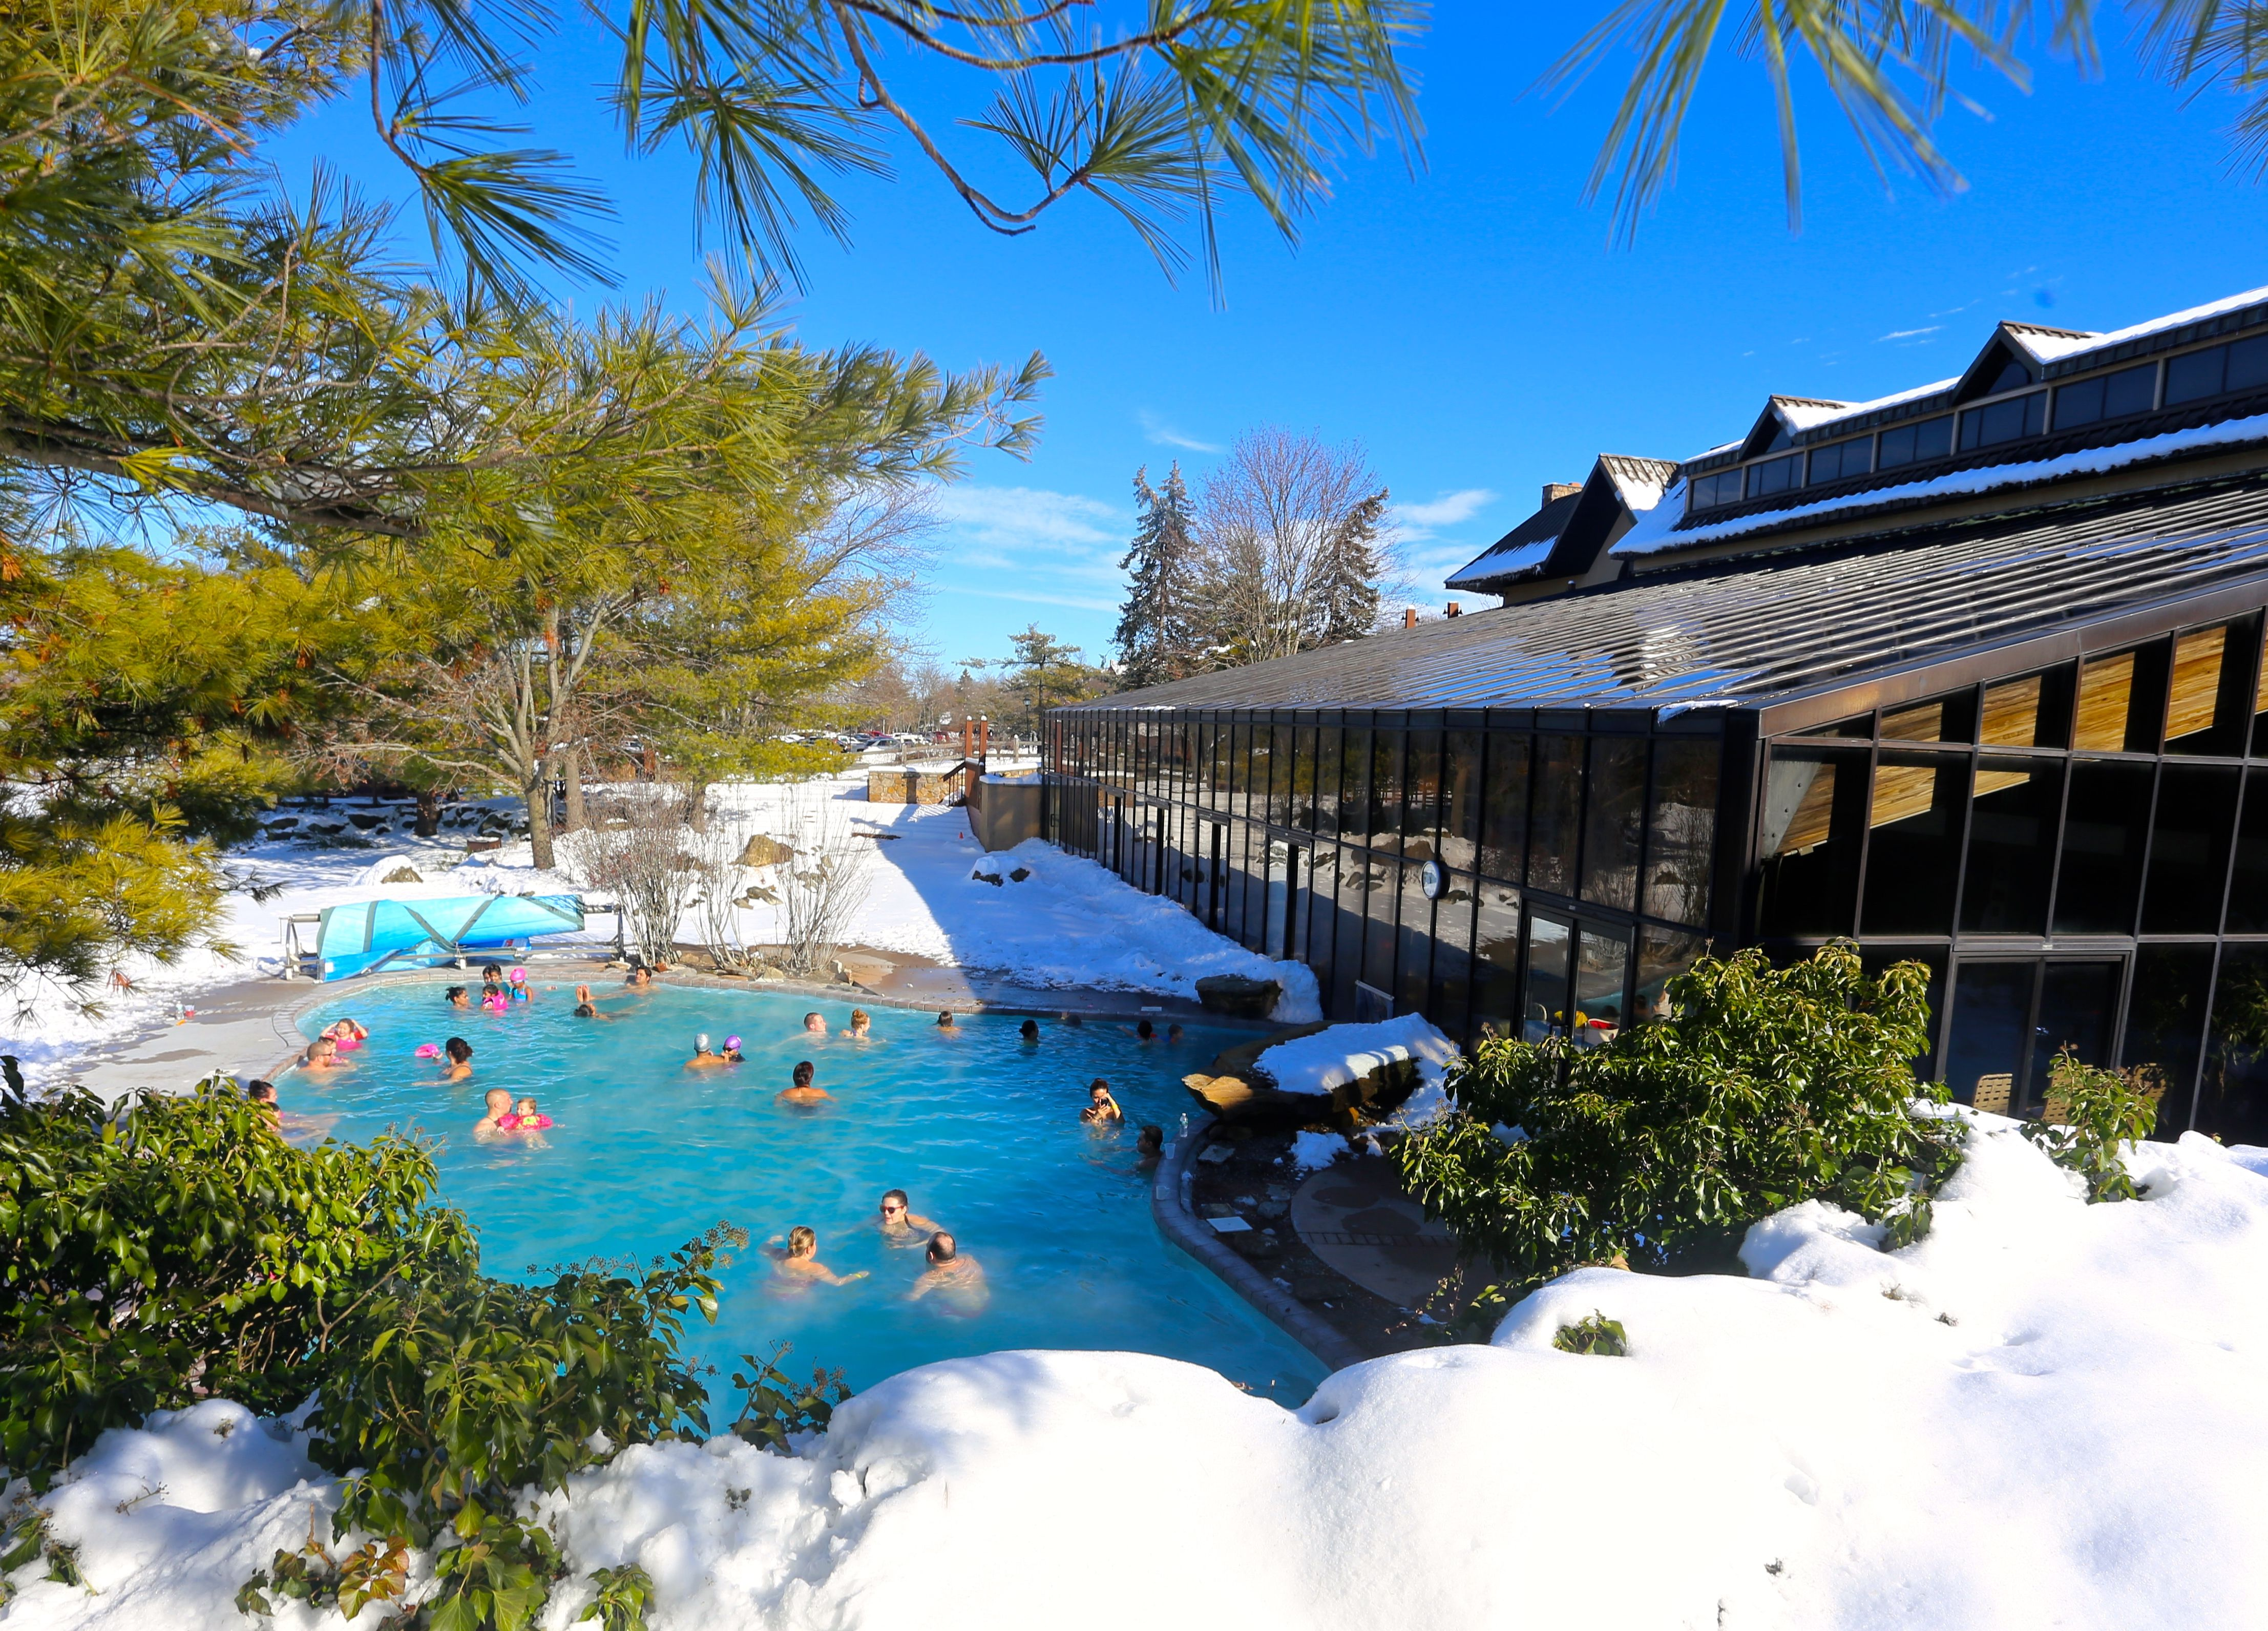 Amazing Outdoor Snow Pool at Minerals Hotel Outdoor